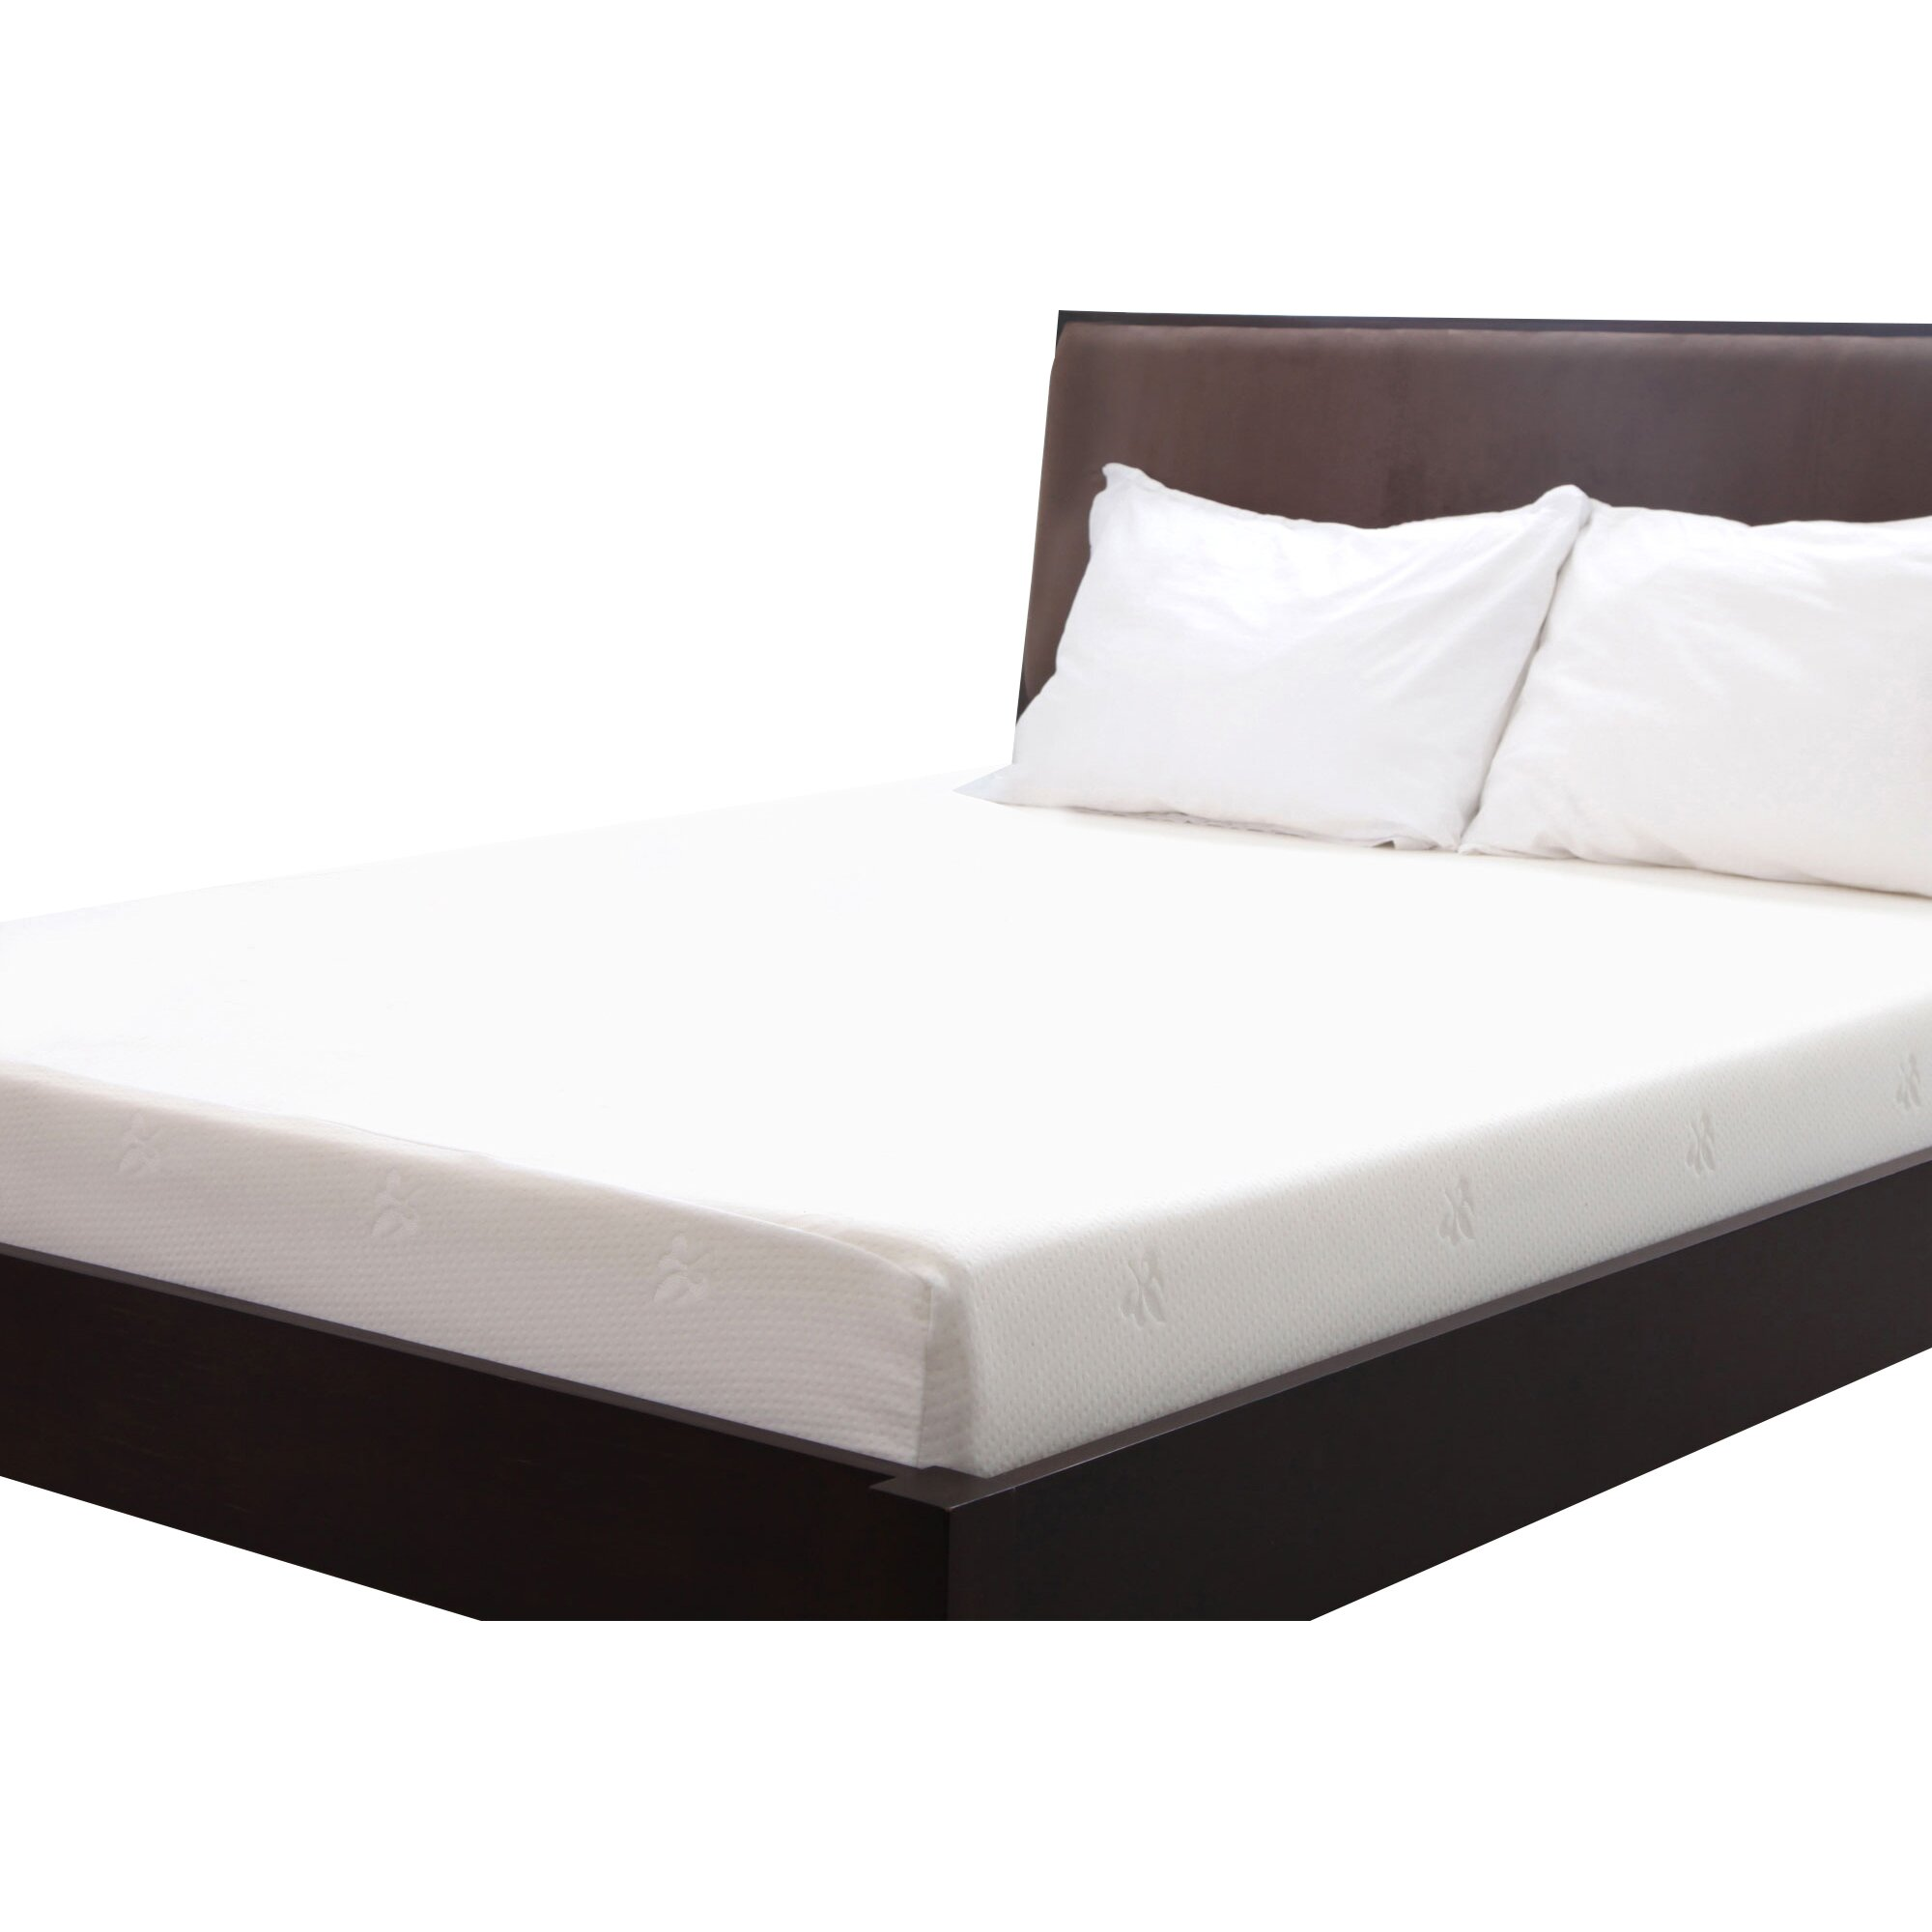 "Remedy 8"" Memory Foam Mattress"